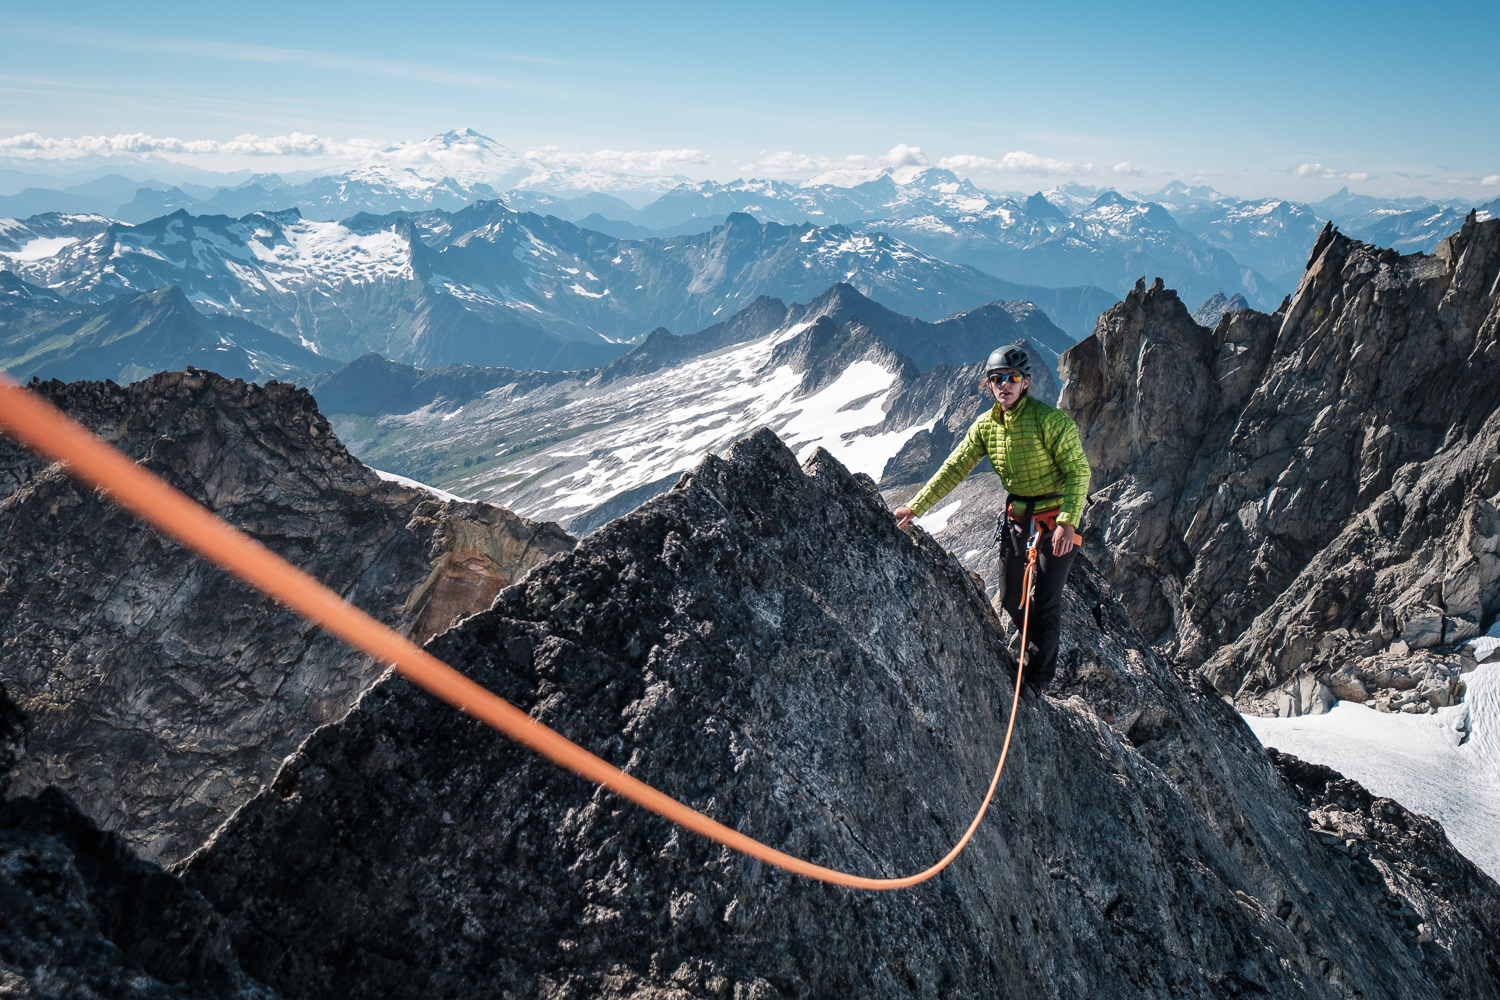 Becca on one of the au cheval sections of the NW ridge of Dorado Needle, with Baker and Eldorado in the background. North Cascades National Park.